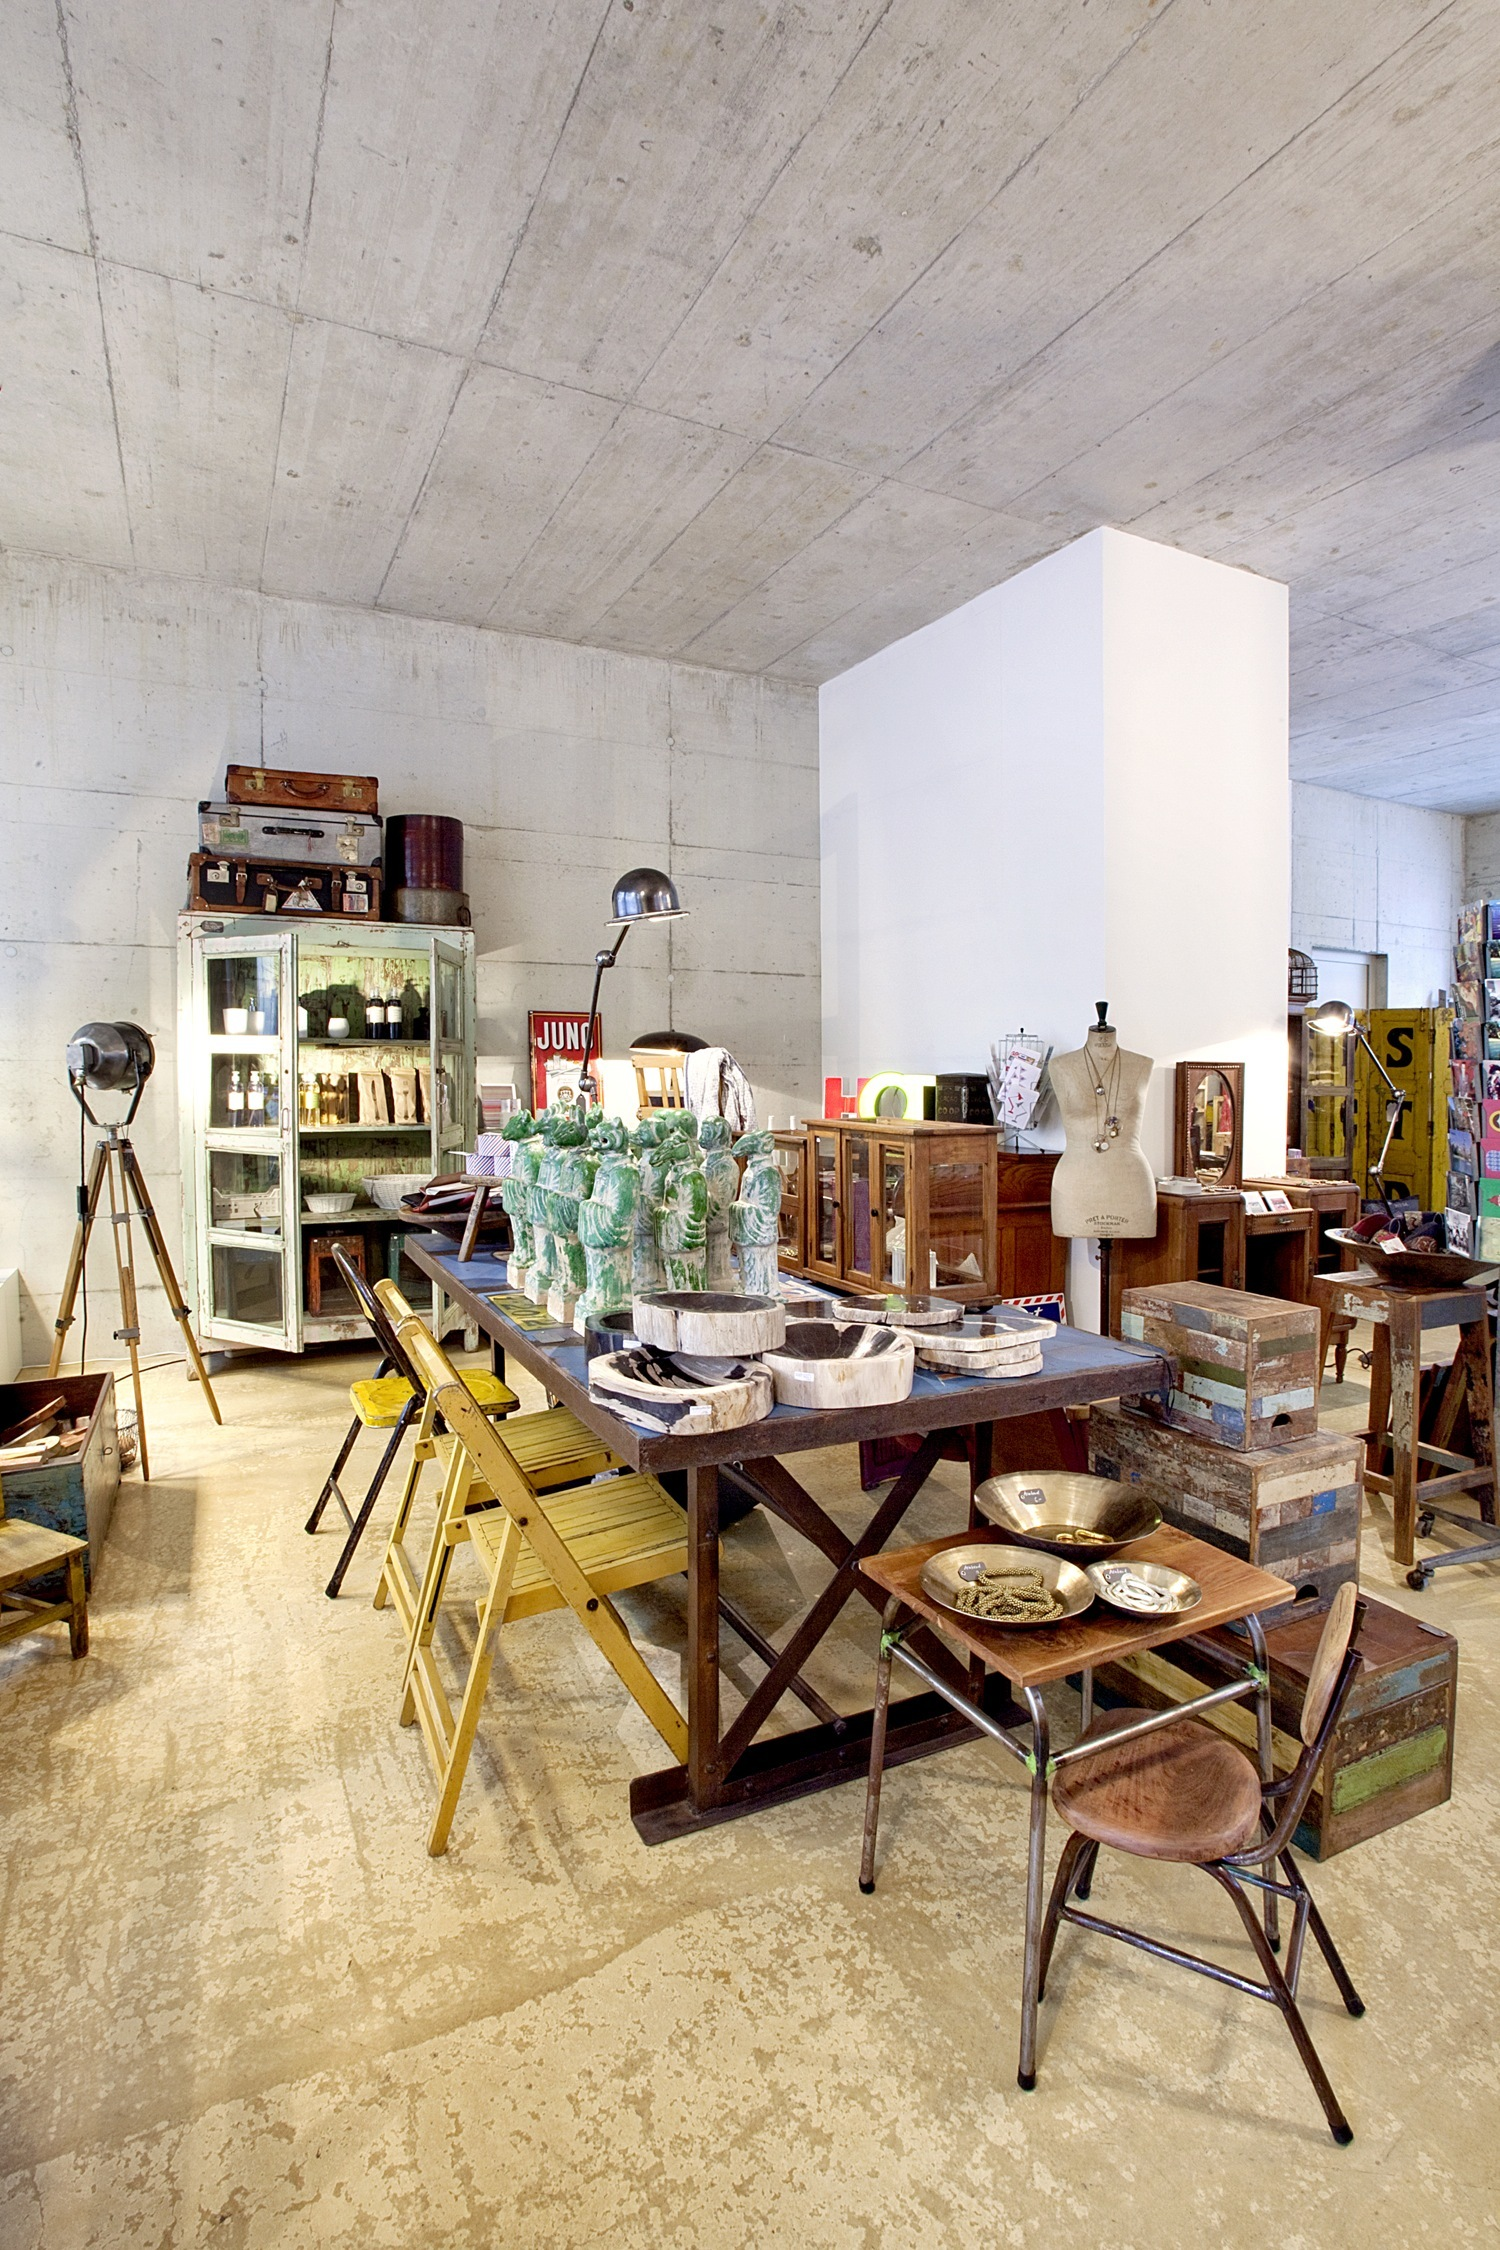 Einzelstück is a vintage home design store in Zurich